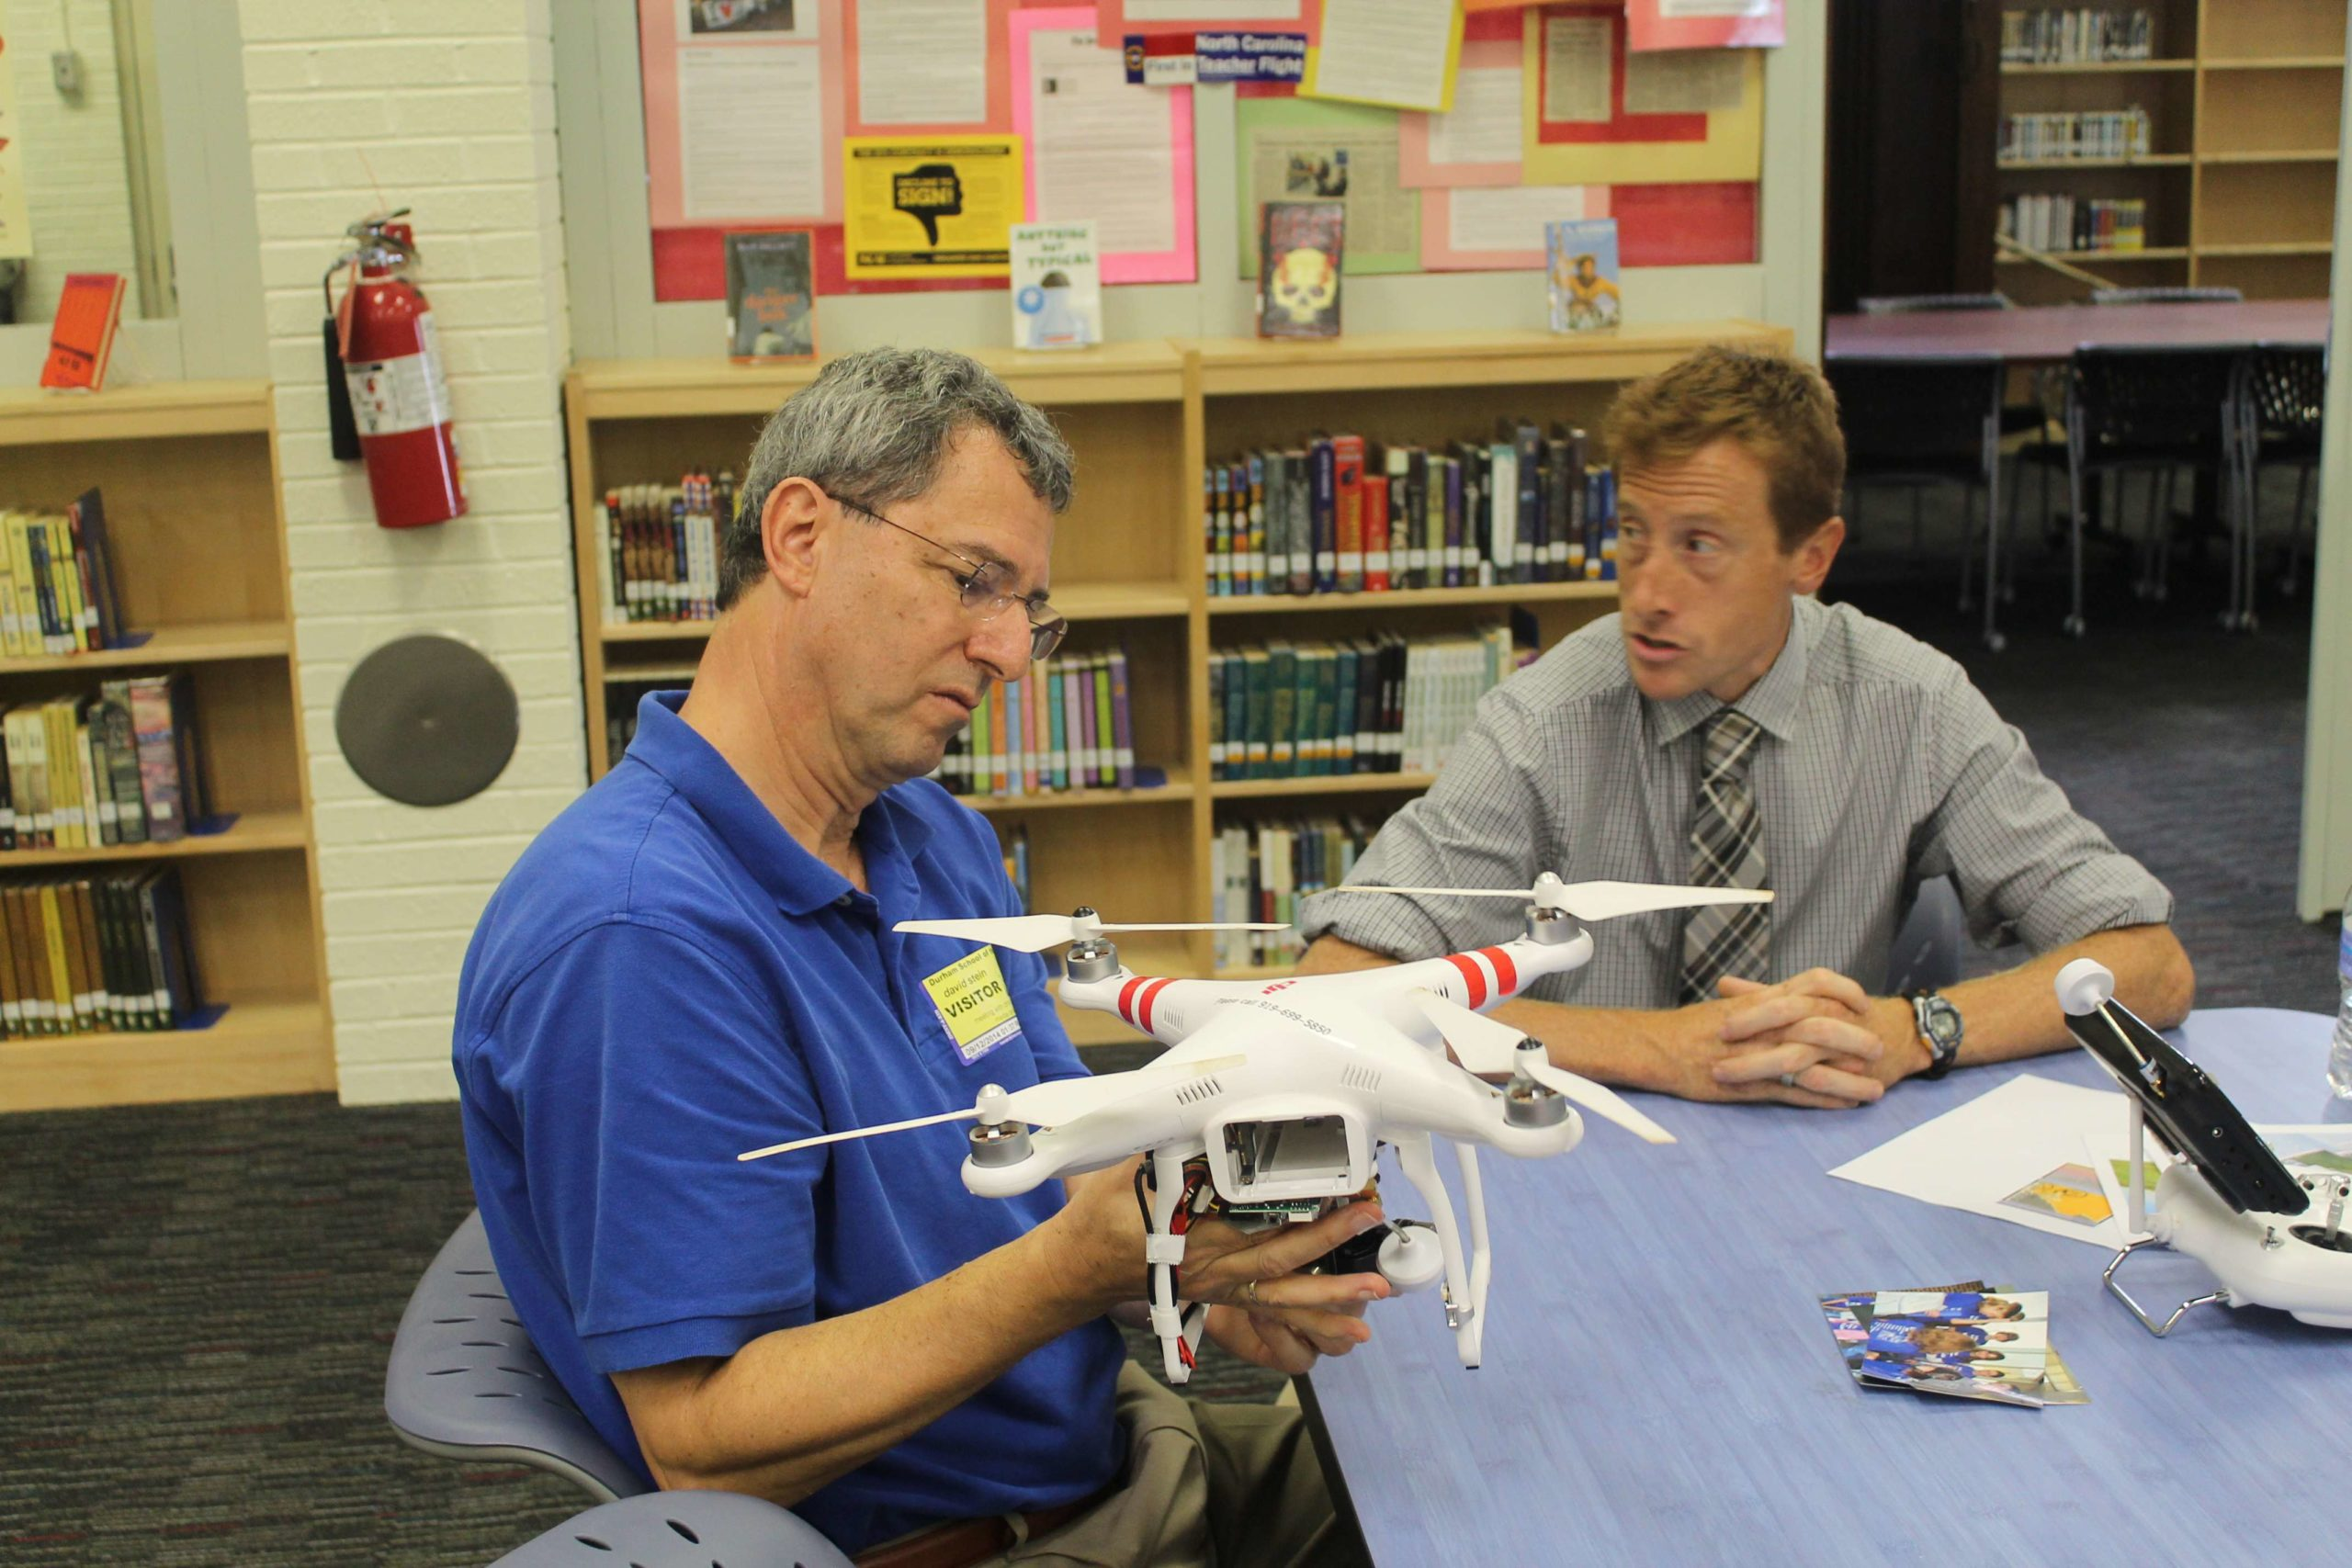 David Stein demonstrates how to utilize a camera in conjunction with a quadcopter. Chris Huggins, a 7th grade science teacher at Durham School of the Arts, met with David to learn about the quadcopter and determine whether or not the purchase of one would benefit his students.